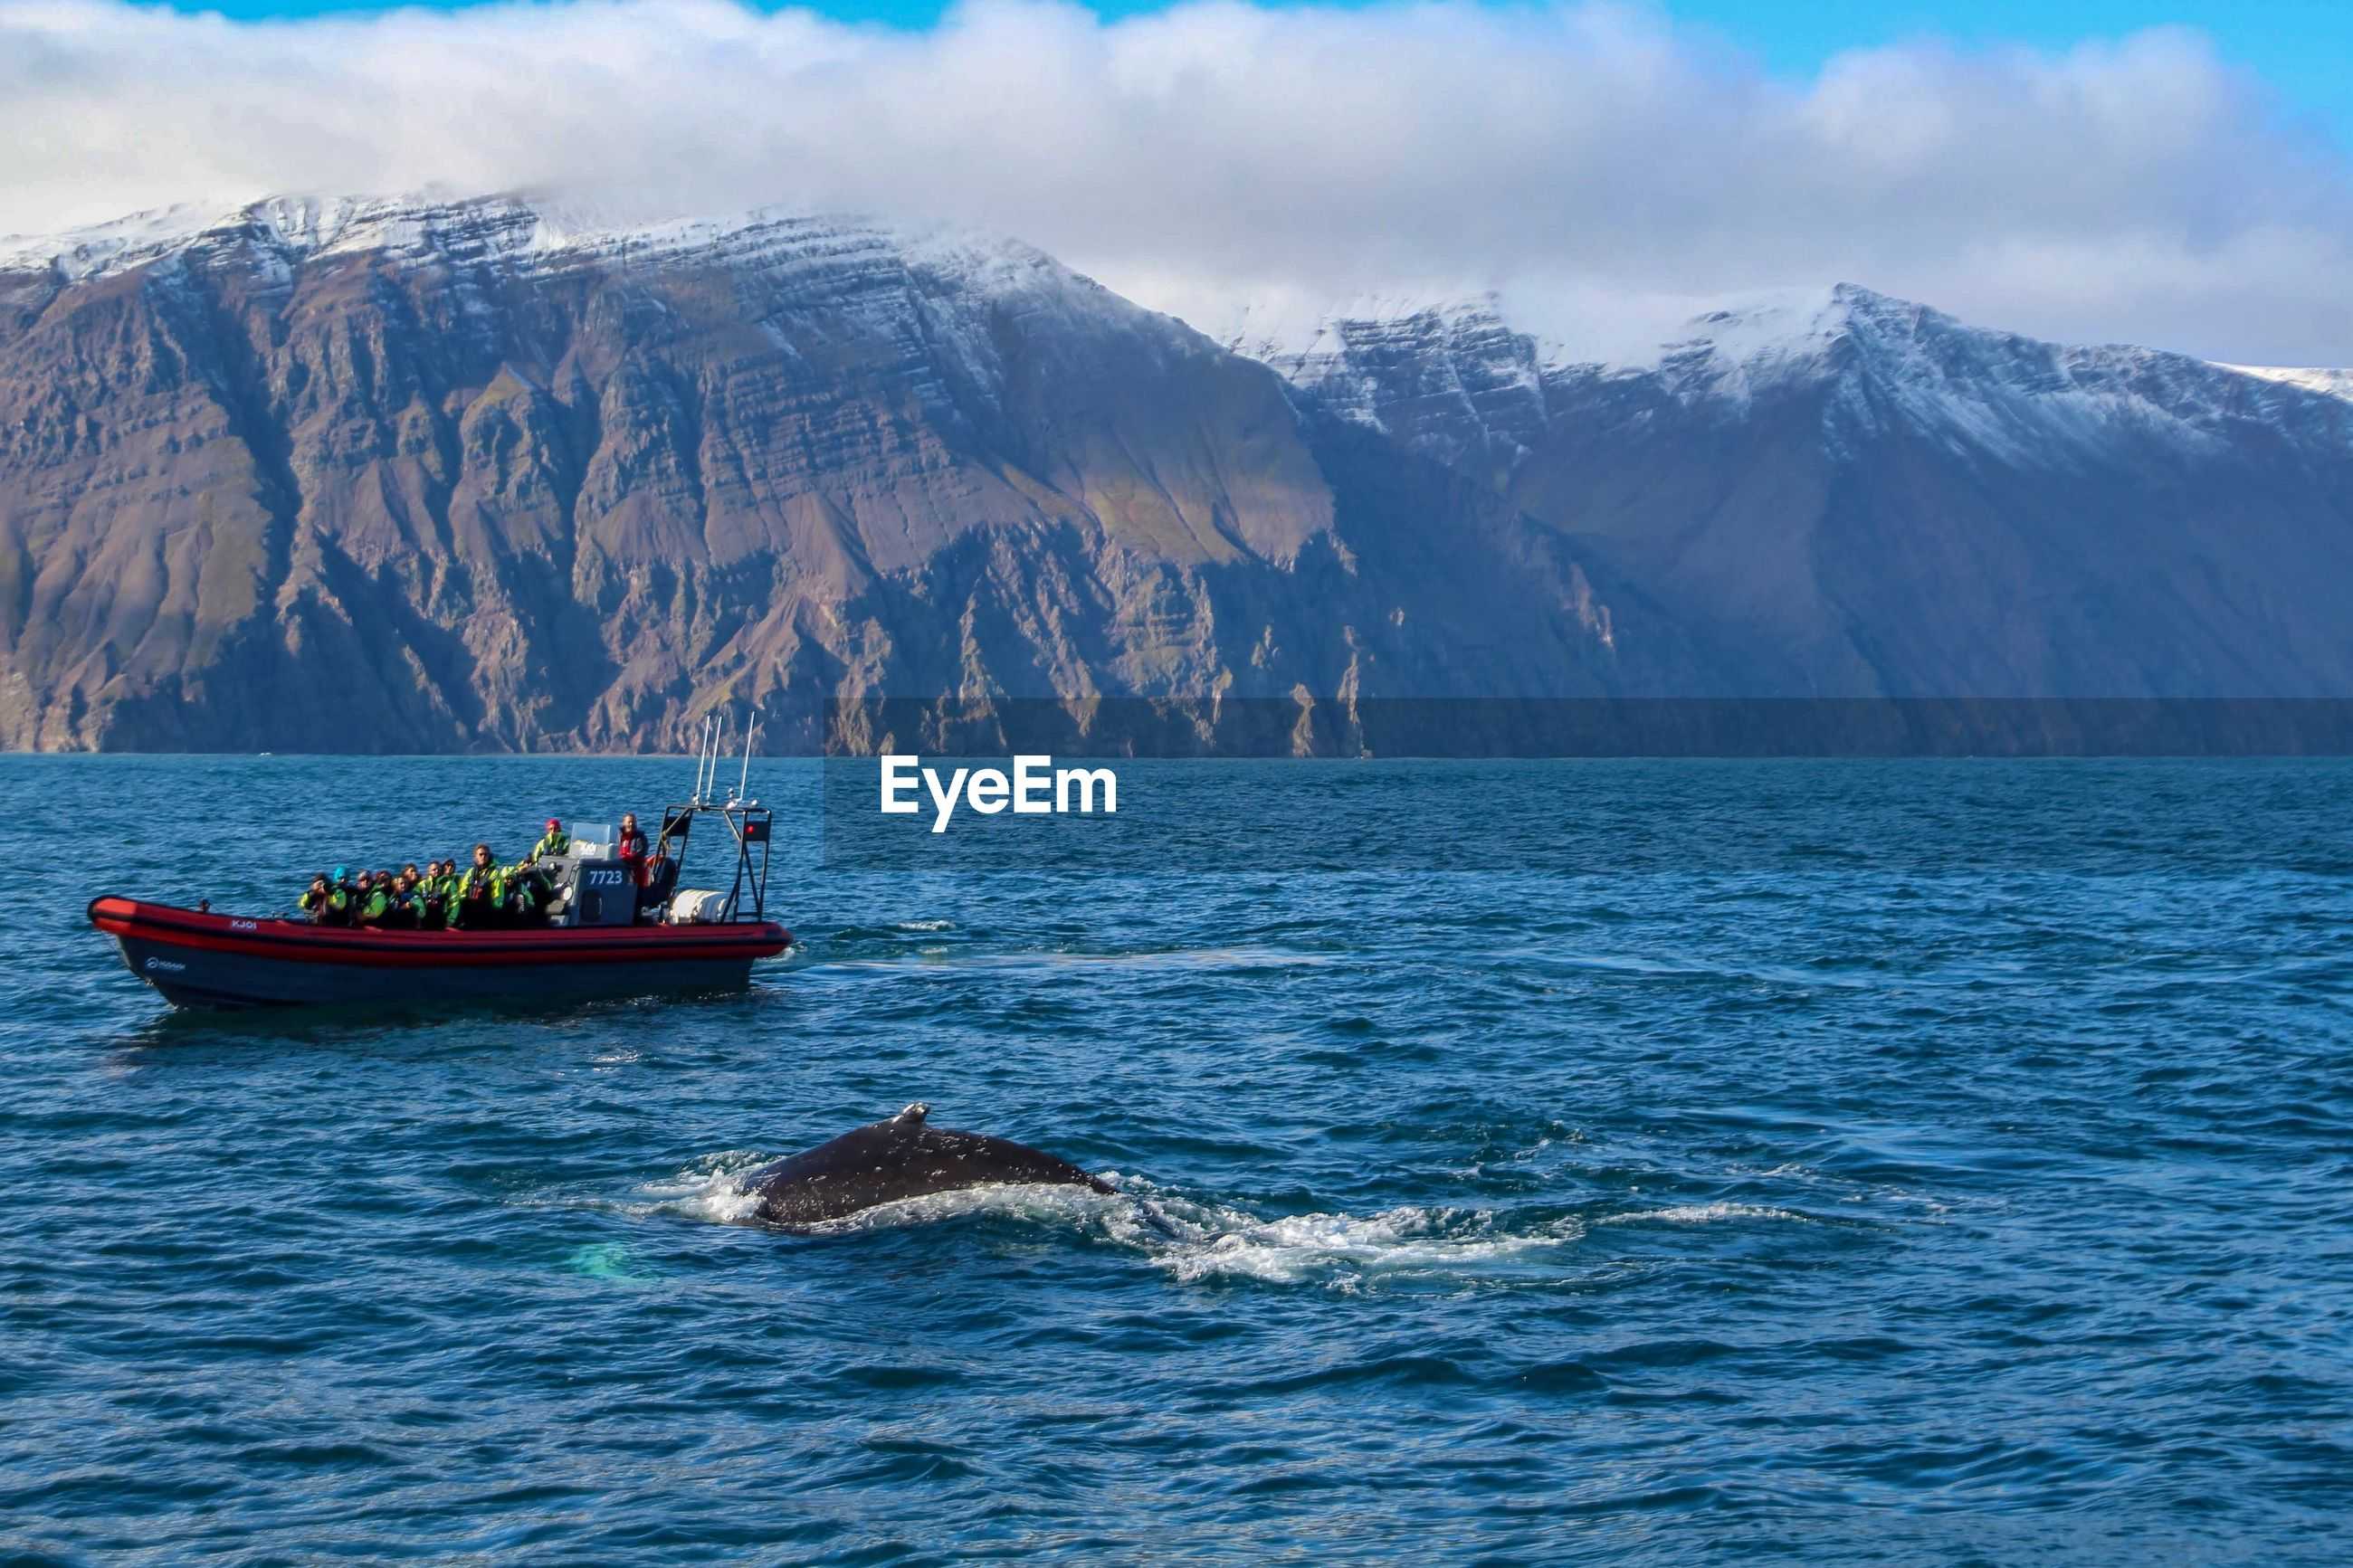 People watching dolphin swimming in sea against mountains